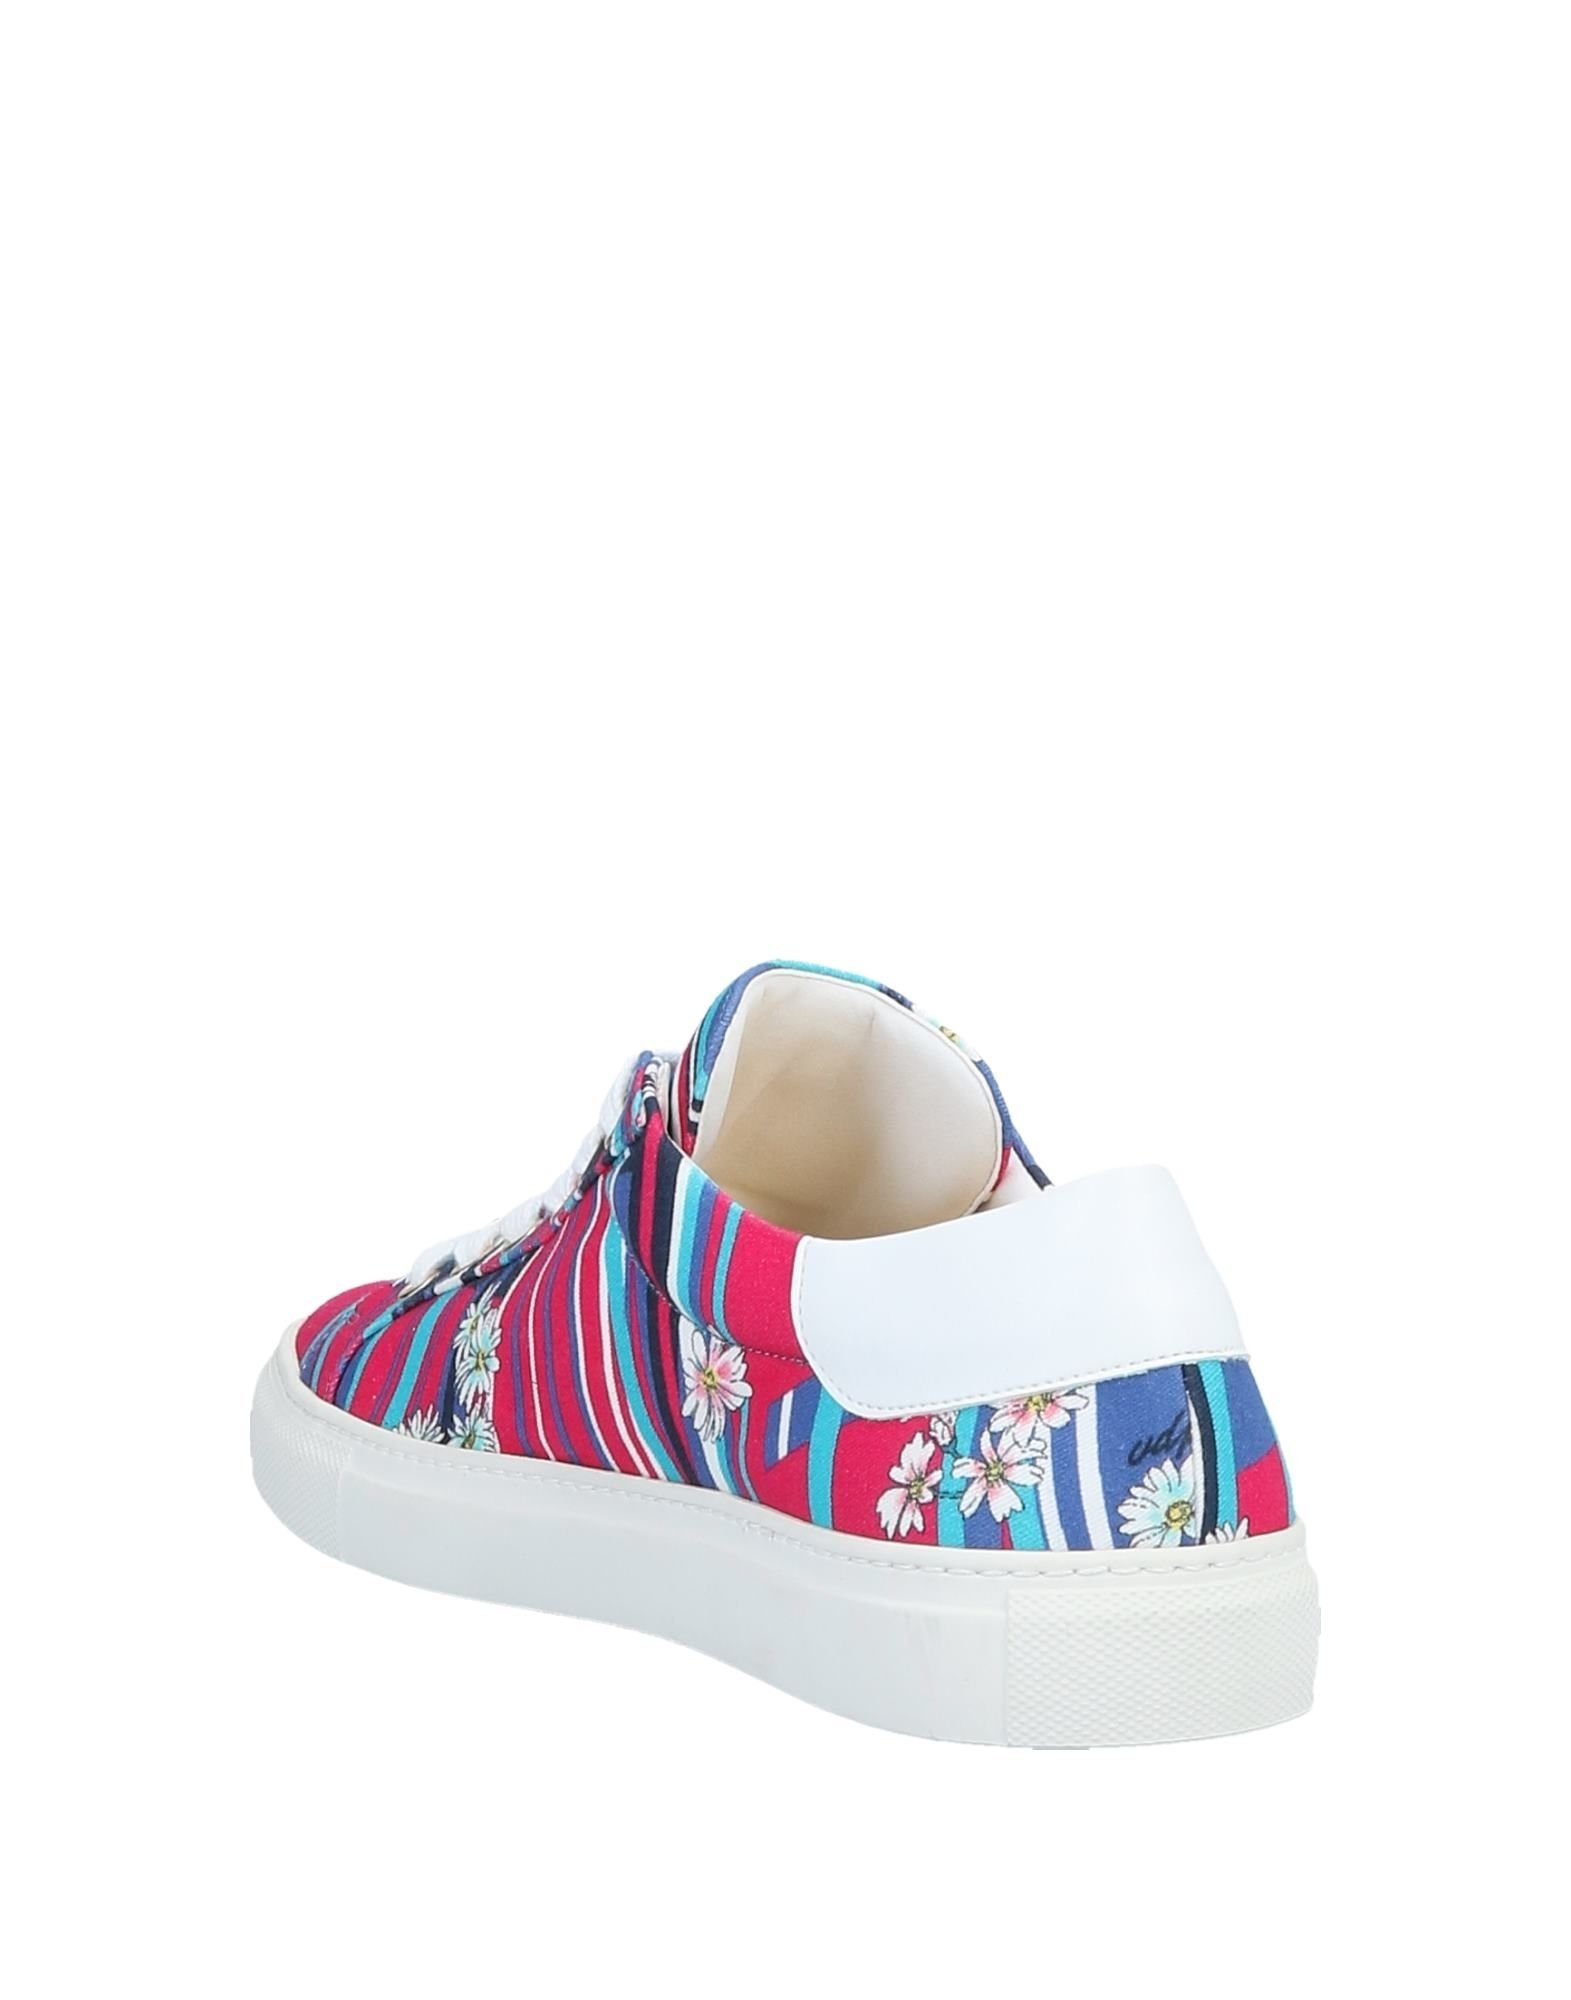 Vdp Collection Sneakers - - - Women Vdp Collection Sneakers online on  United Kingdom - 11564735UA 8a8132